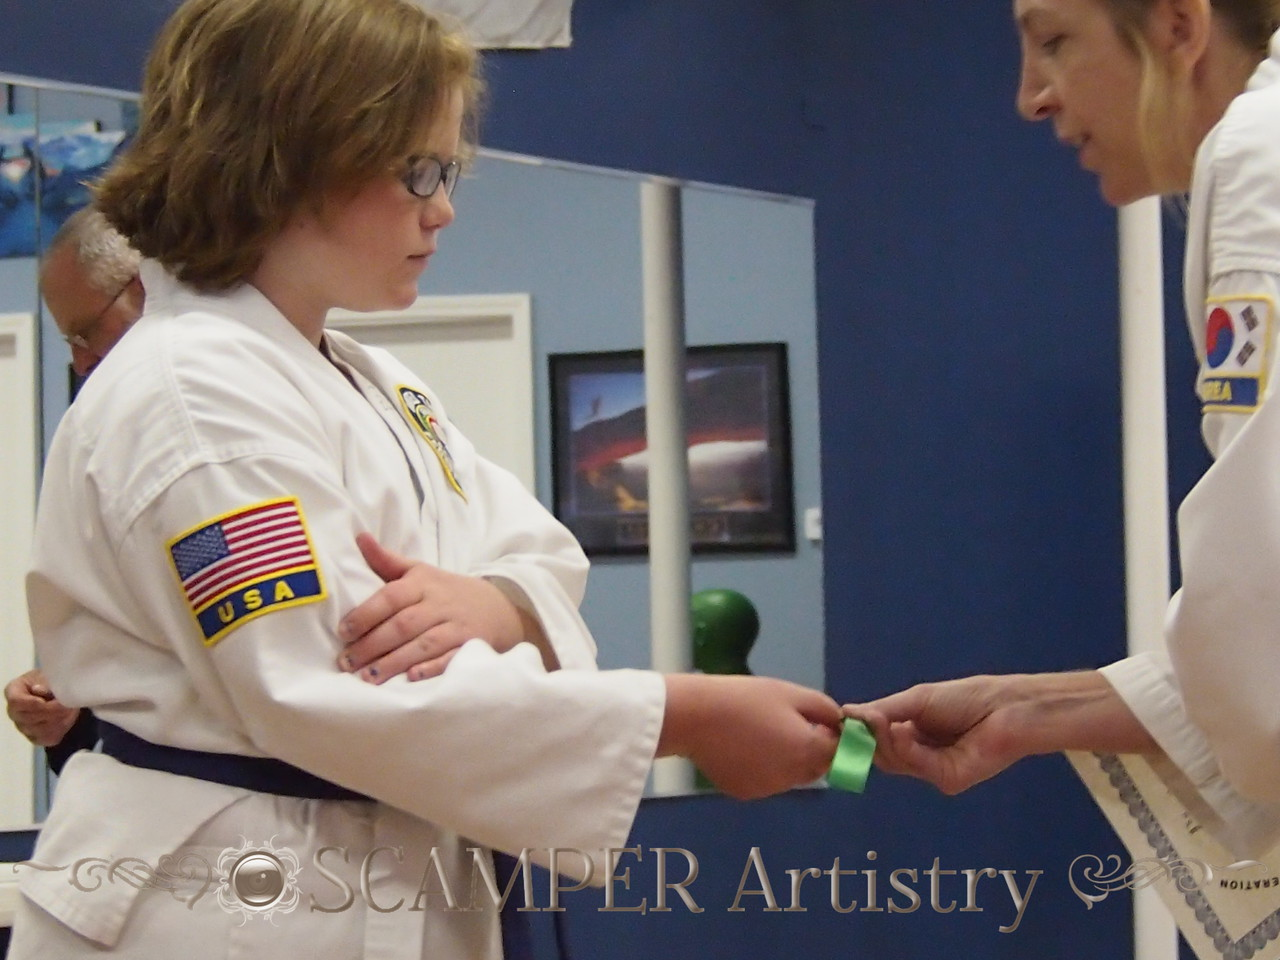 Belt Ceremony and Art Commissioned June 16, 2014